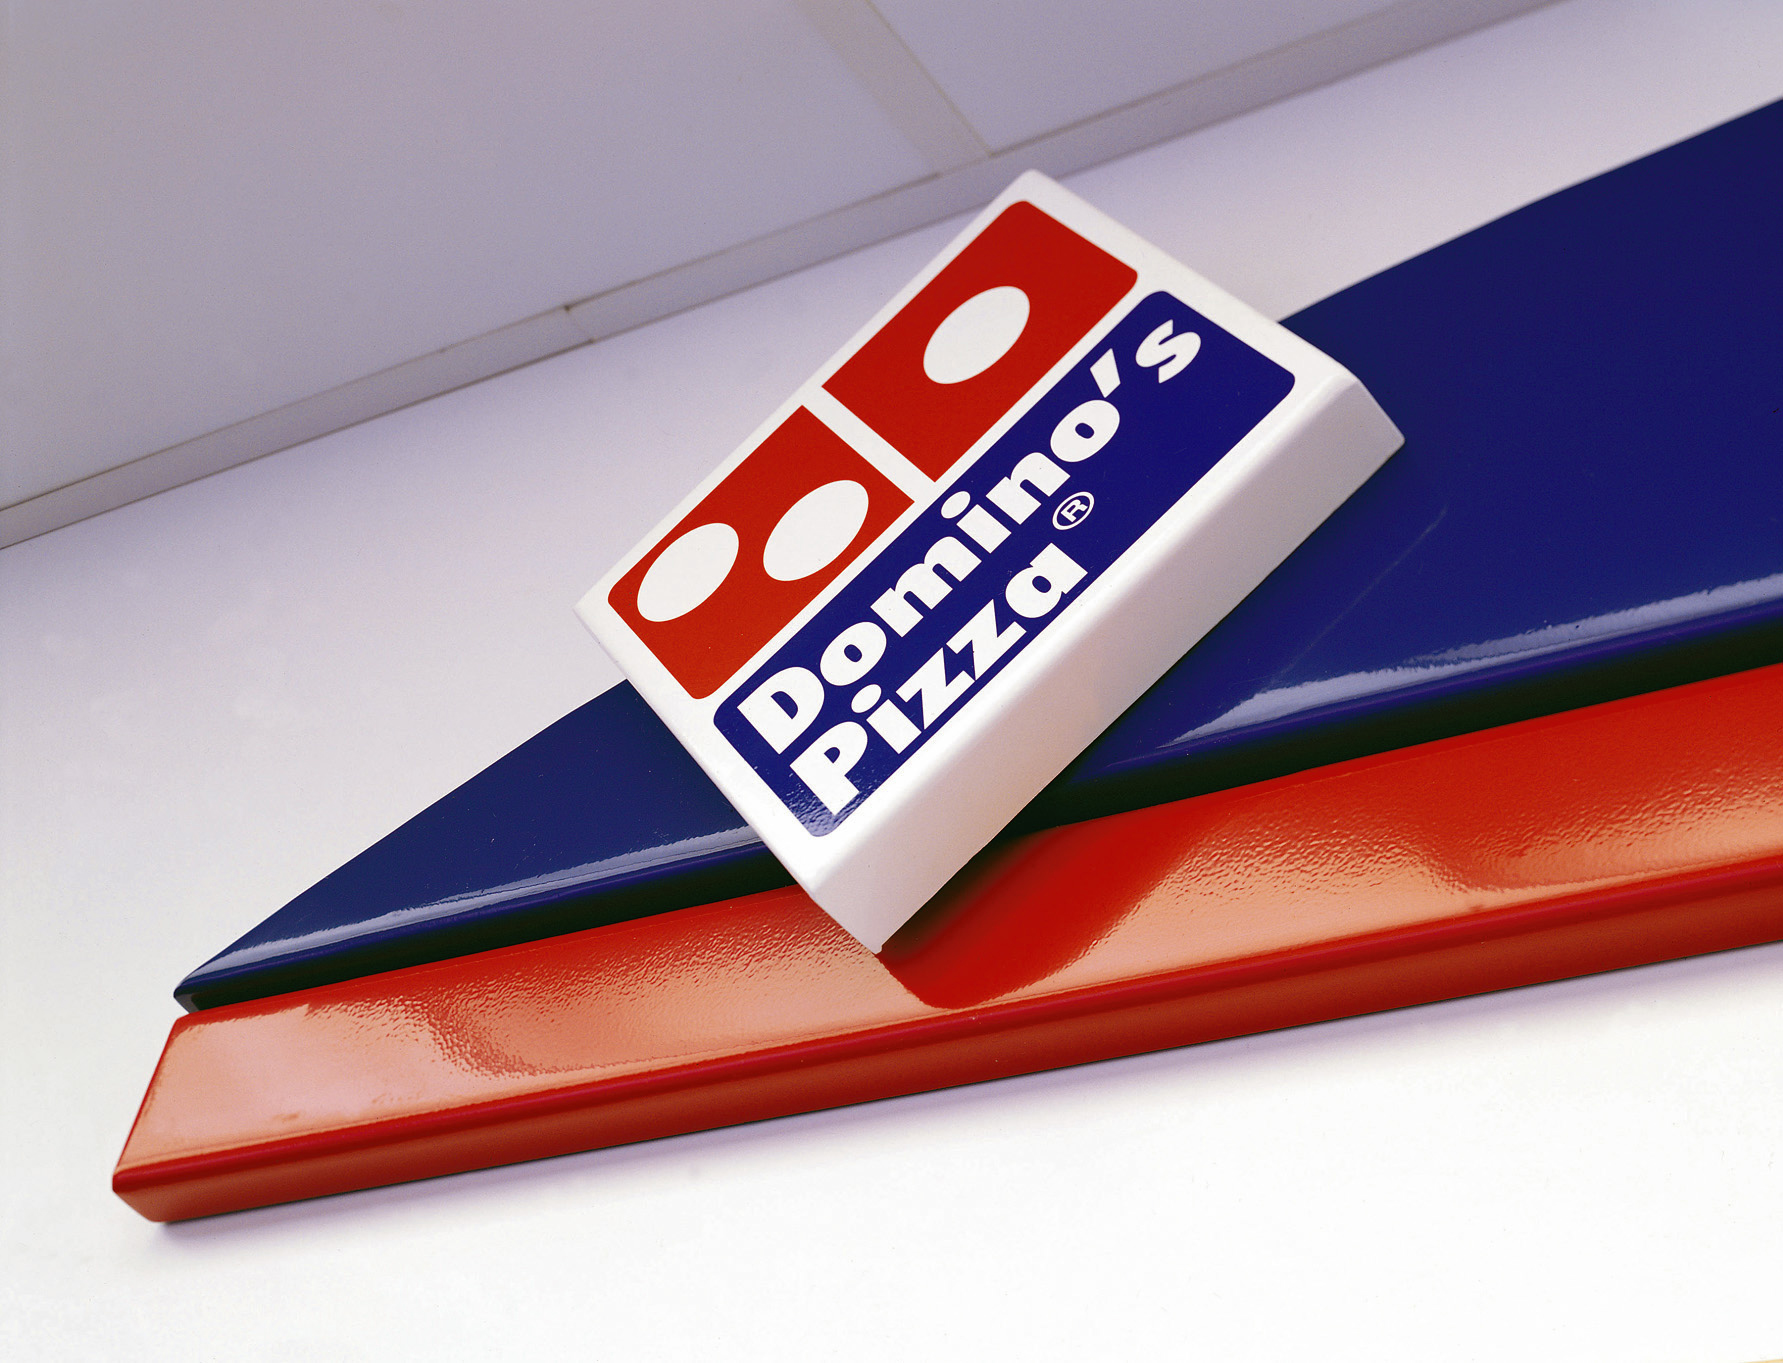 move to cloud computing, and the outsourcing of a number of its key ...: http://www.cnmeonline.com/news/dominos-it-outsourcing-crucial-to-resilience/